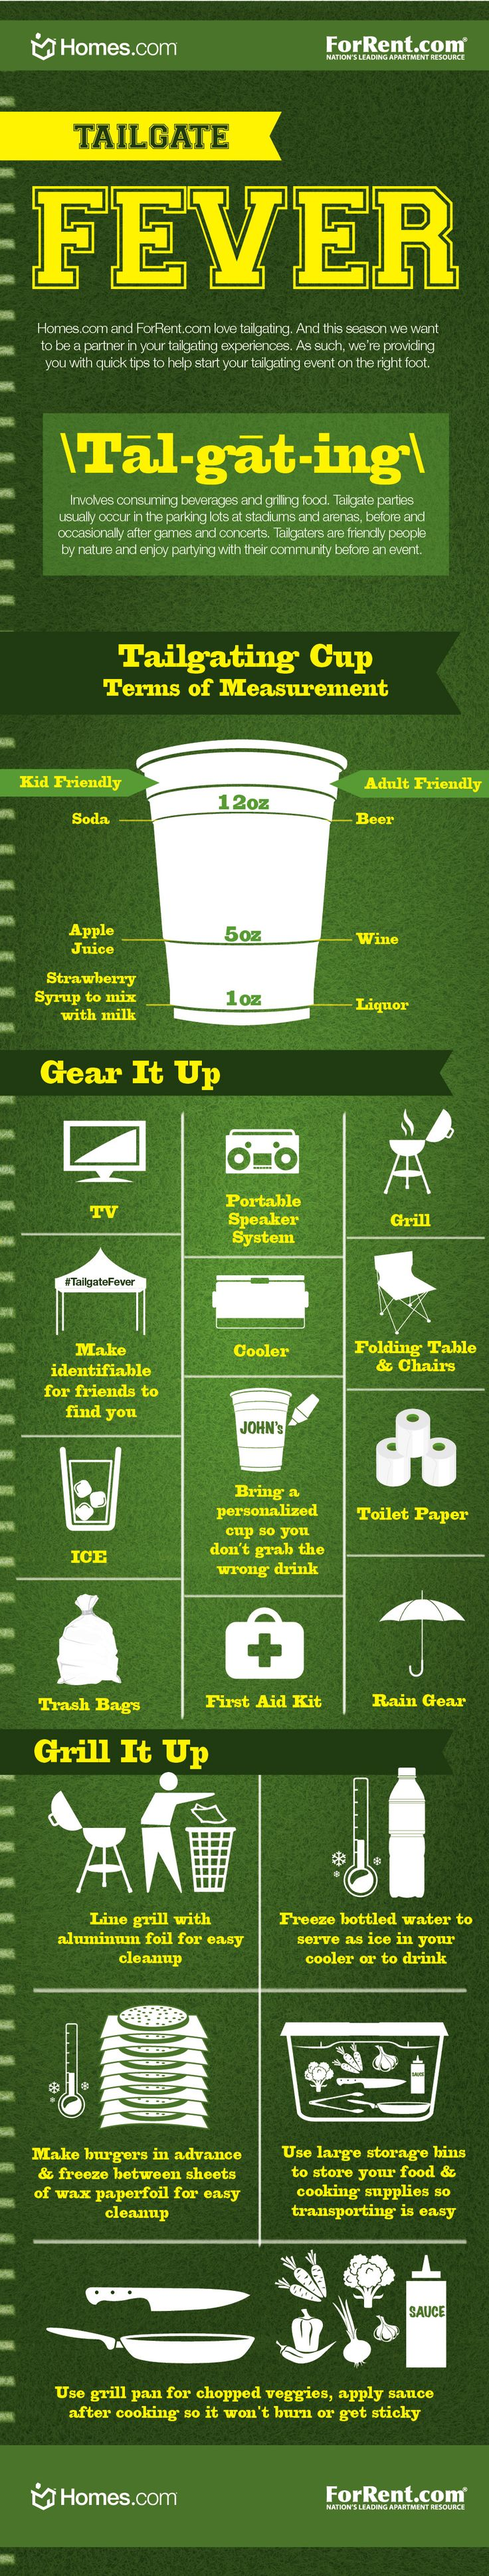 Tailgating Infographic. We have #TailgateFever! #ForRent.com #tailgating